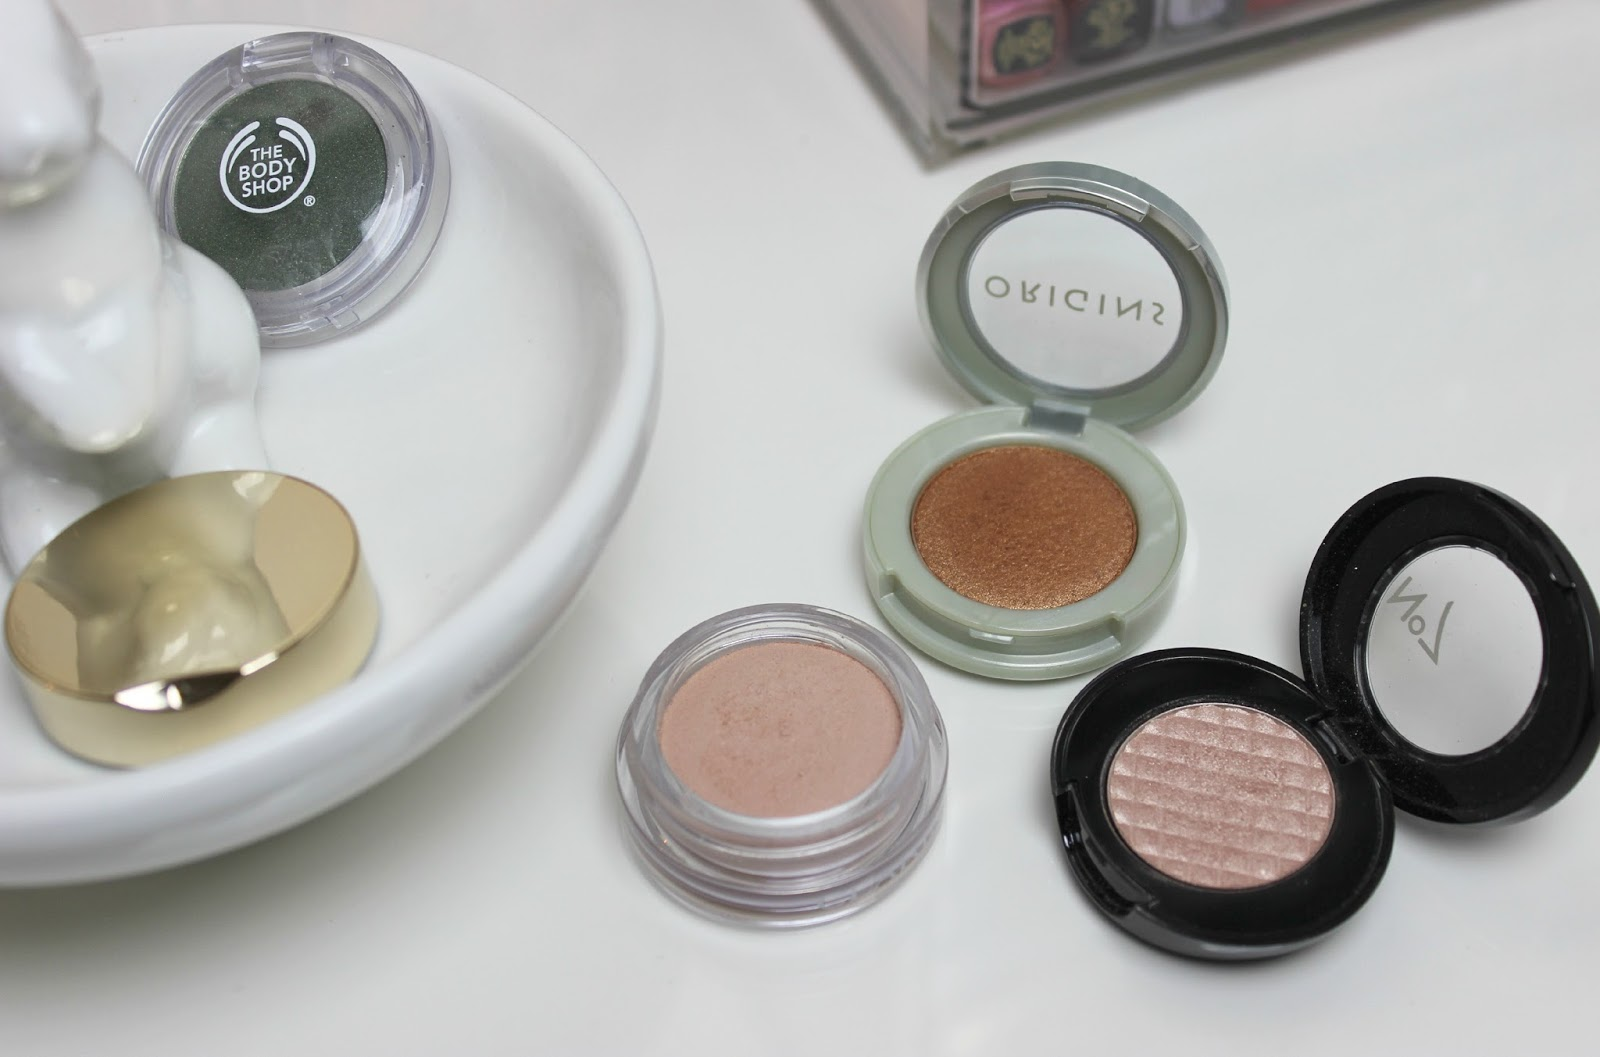 A picture of Origins Peeper Pleasers Powder Eye Shadow, No7 Stay Perfect Eyeshadow and Clarins Ombre Matte Cream-to-Powder Matte Eyeshadows